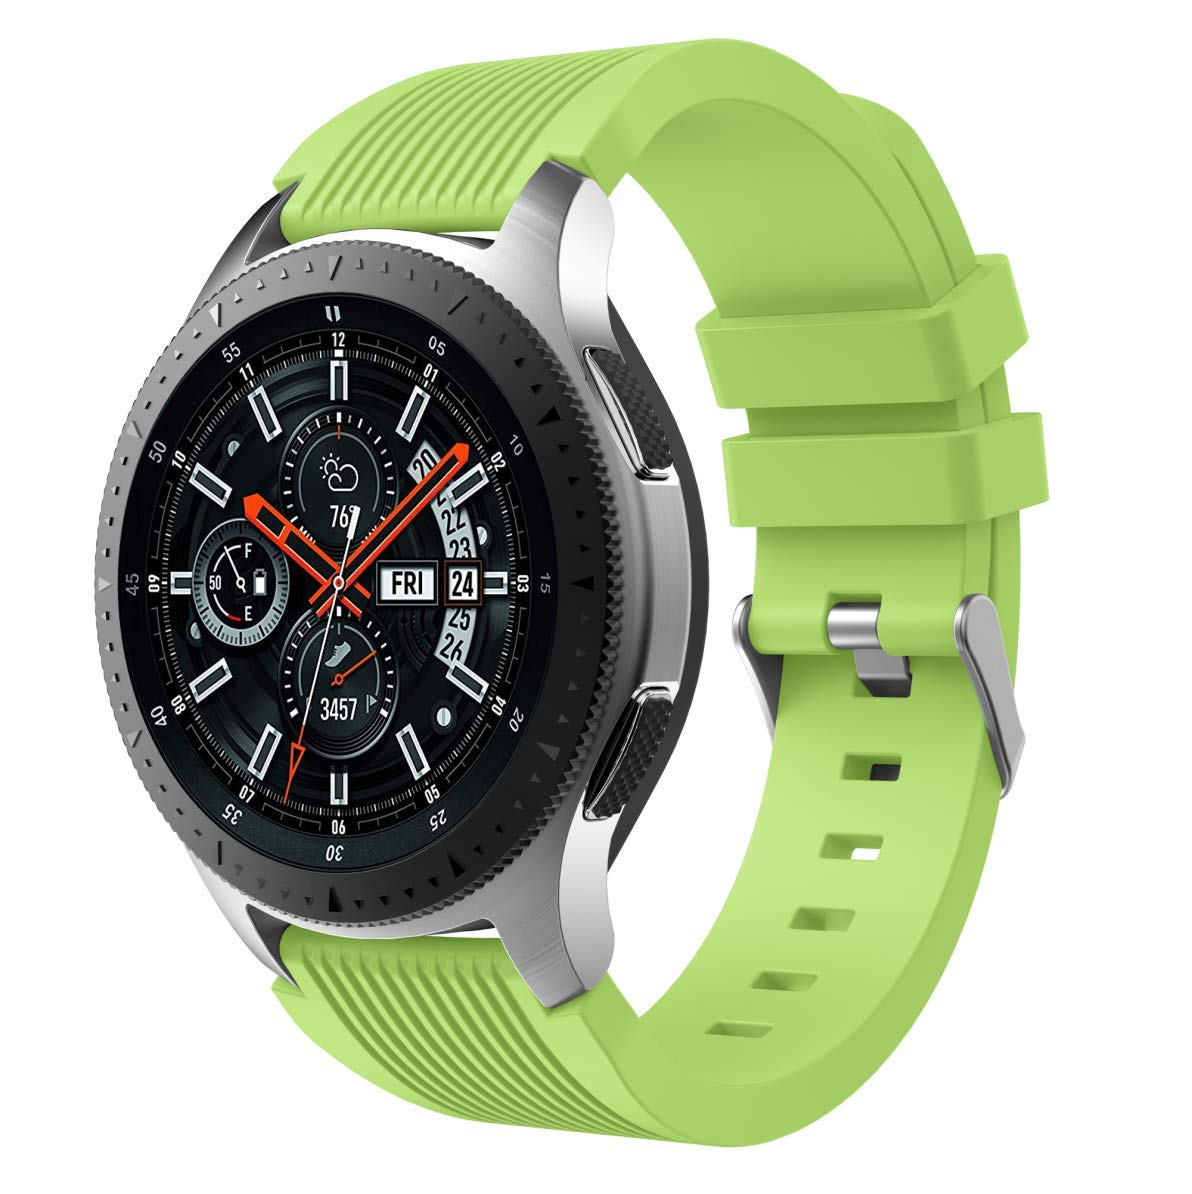 Watch Band for Samsung Galaxy Watch, MoreToys 22MM Silicone Replacement Accessory Wristband Watchband for Samsung Galaxy Watch 46MM Version (Green)